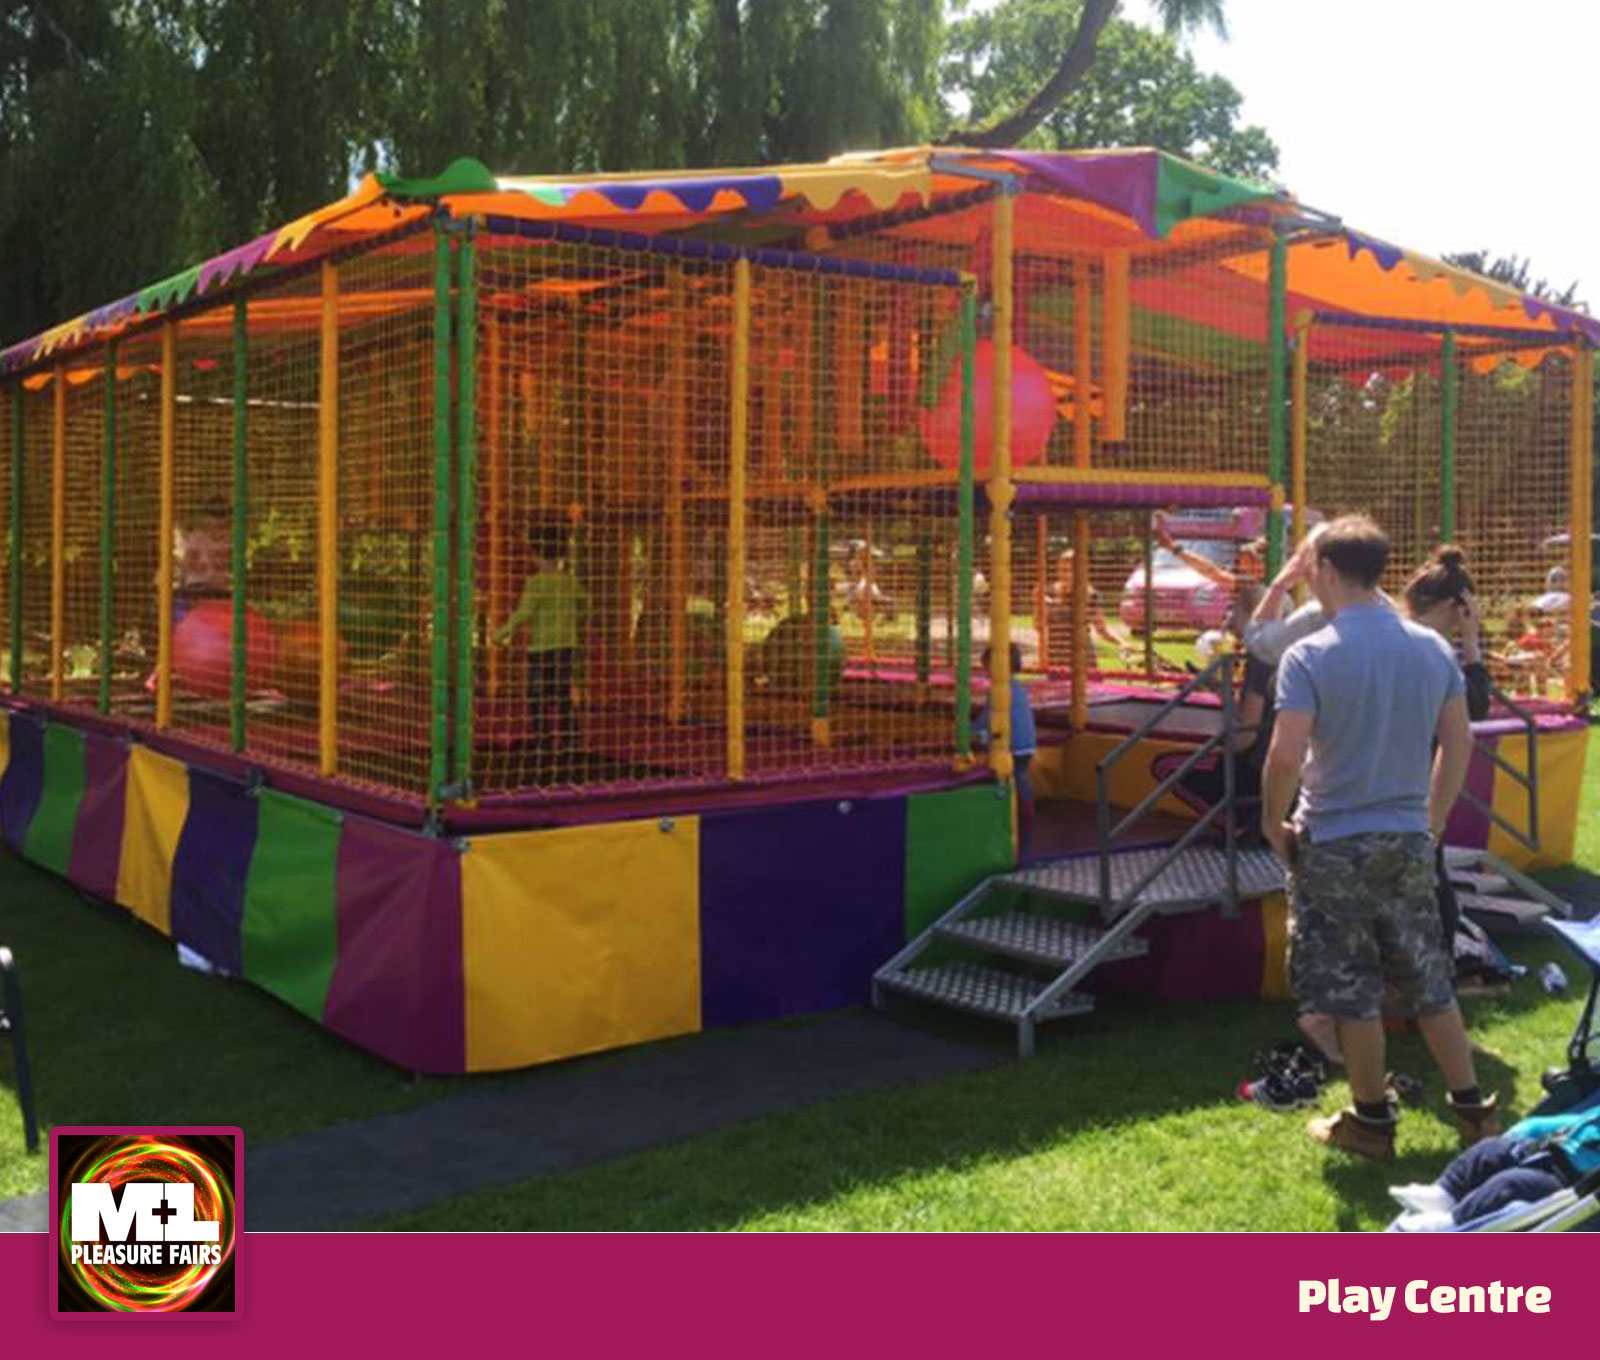 Play Centre Image